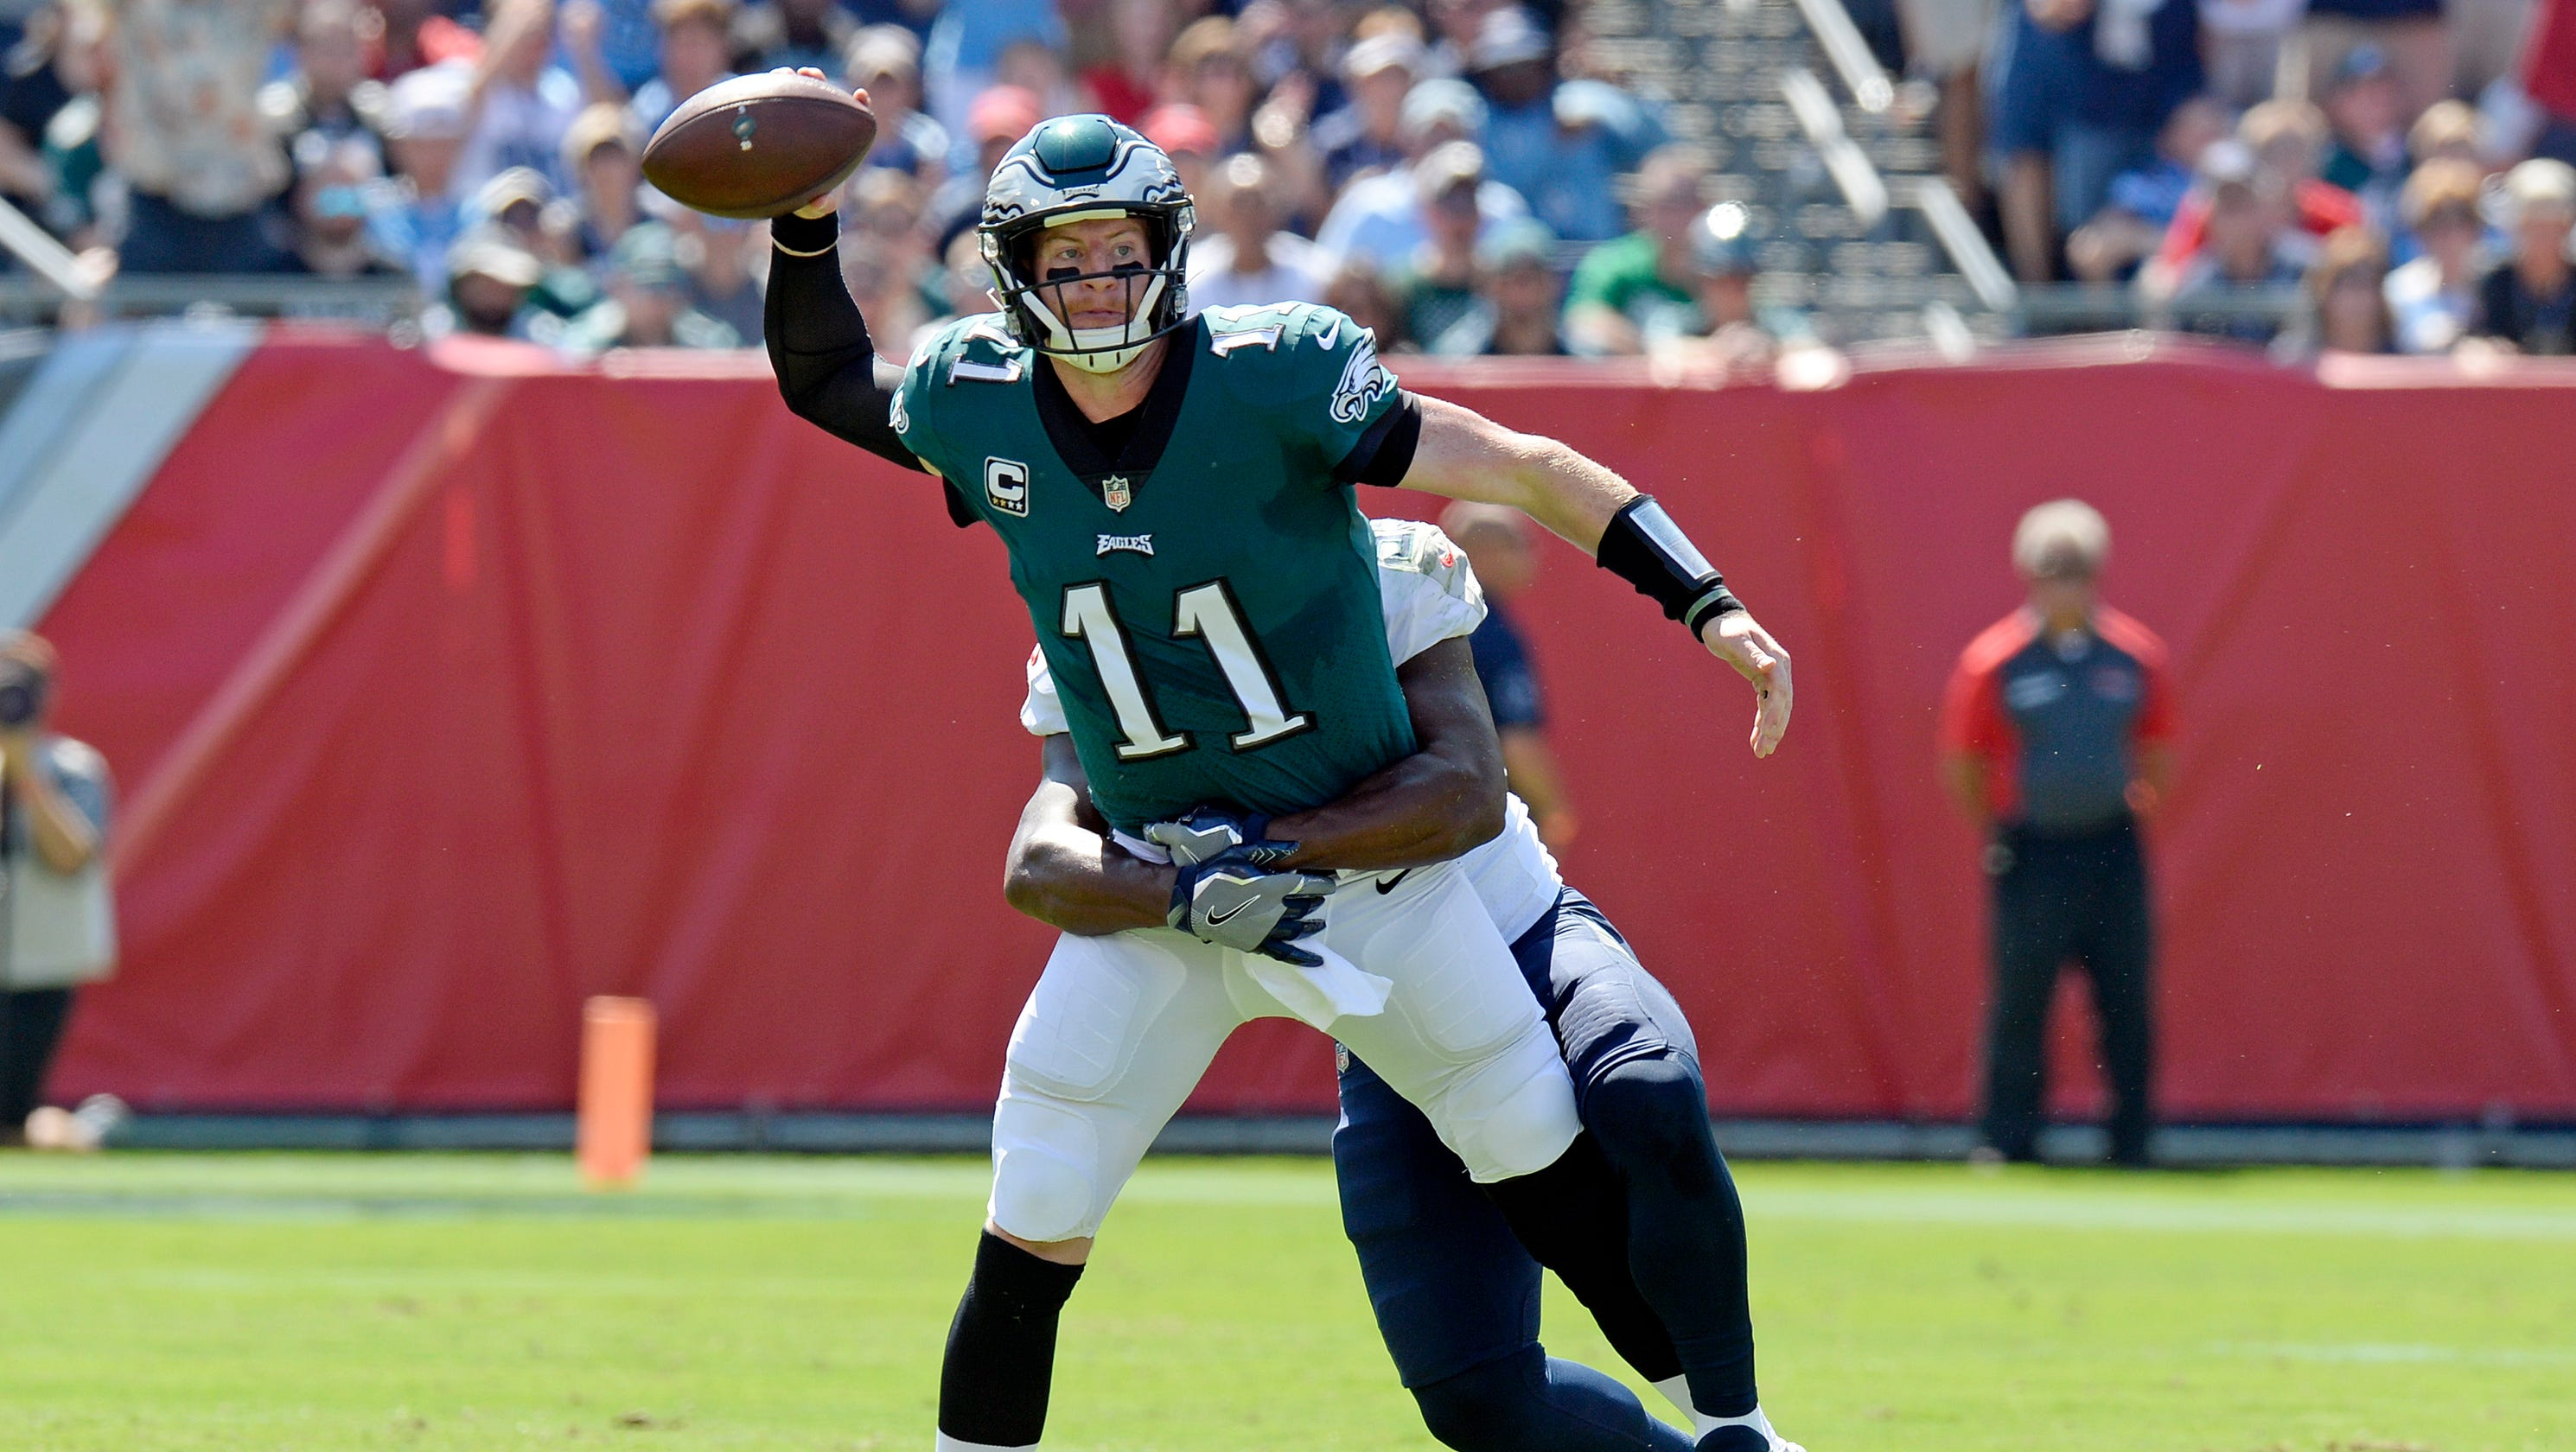 e40f50471ac Is Philadelphia Eagles' QB Carson Wentz even better after knee surgery? In  some ways, yes